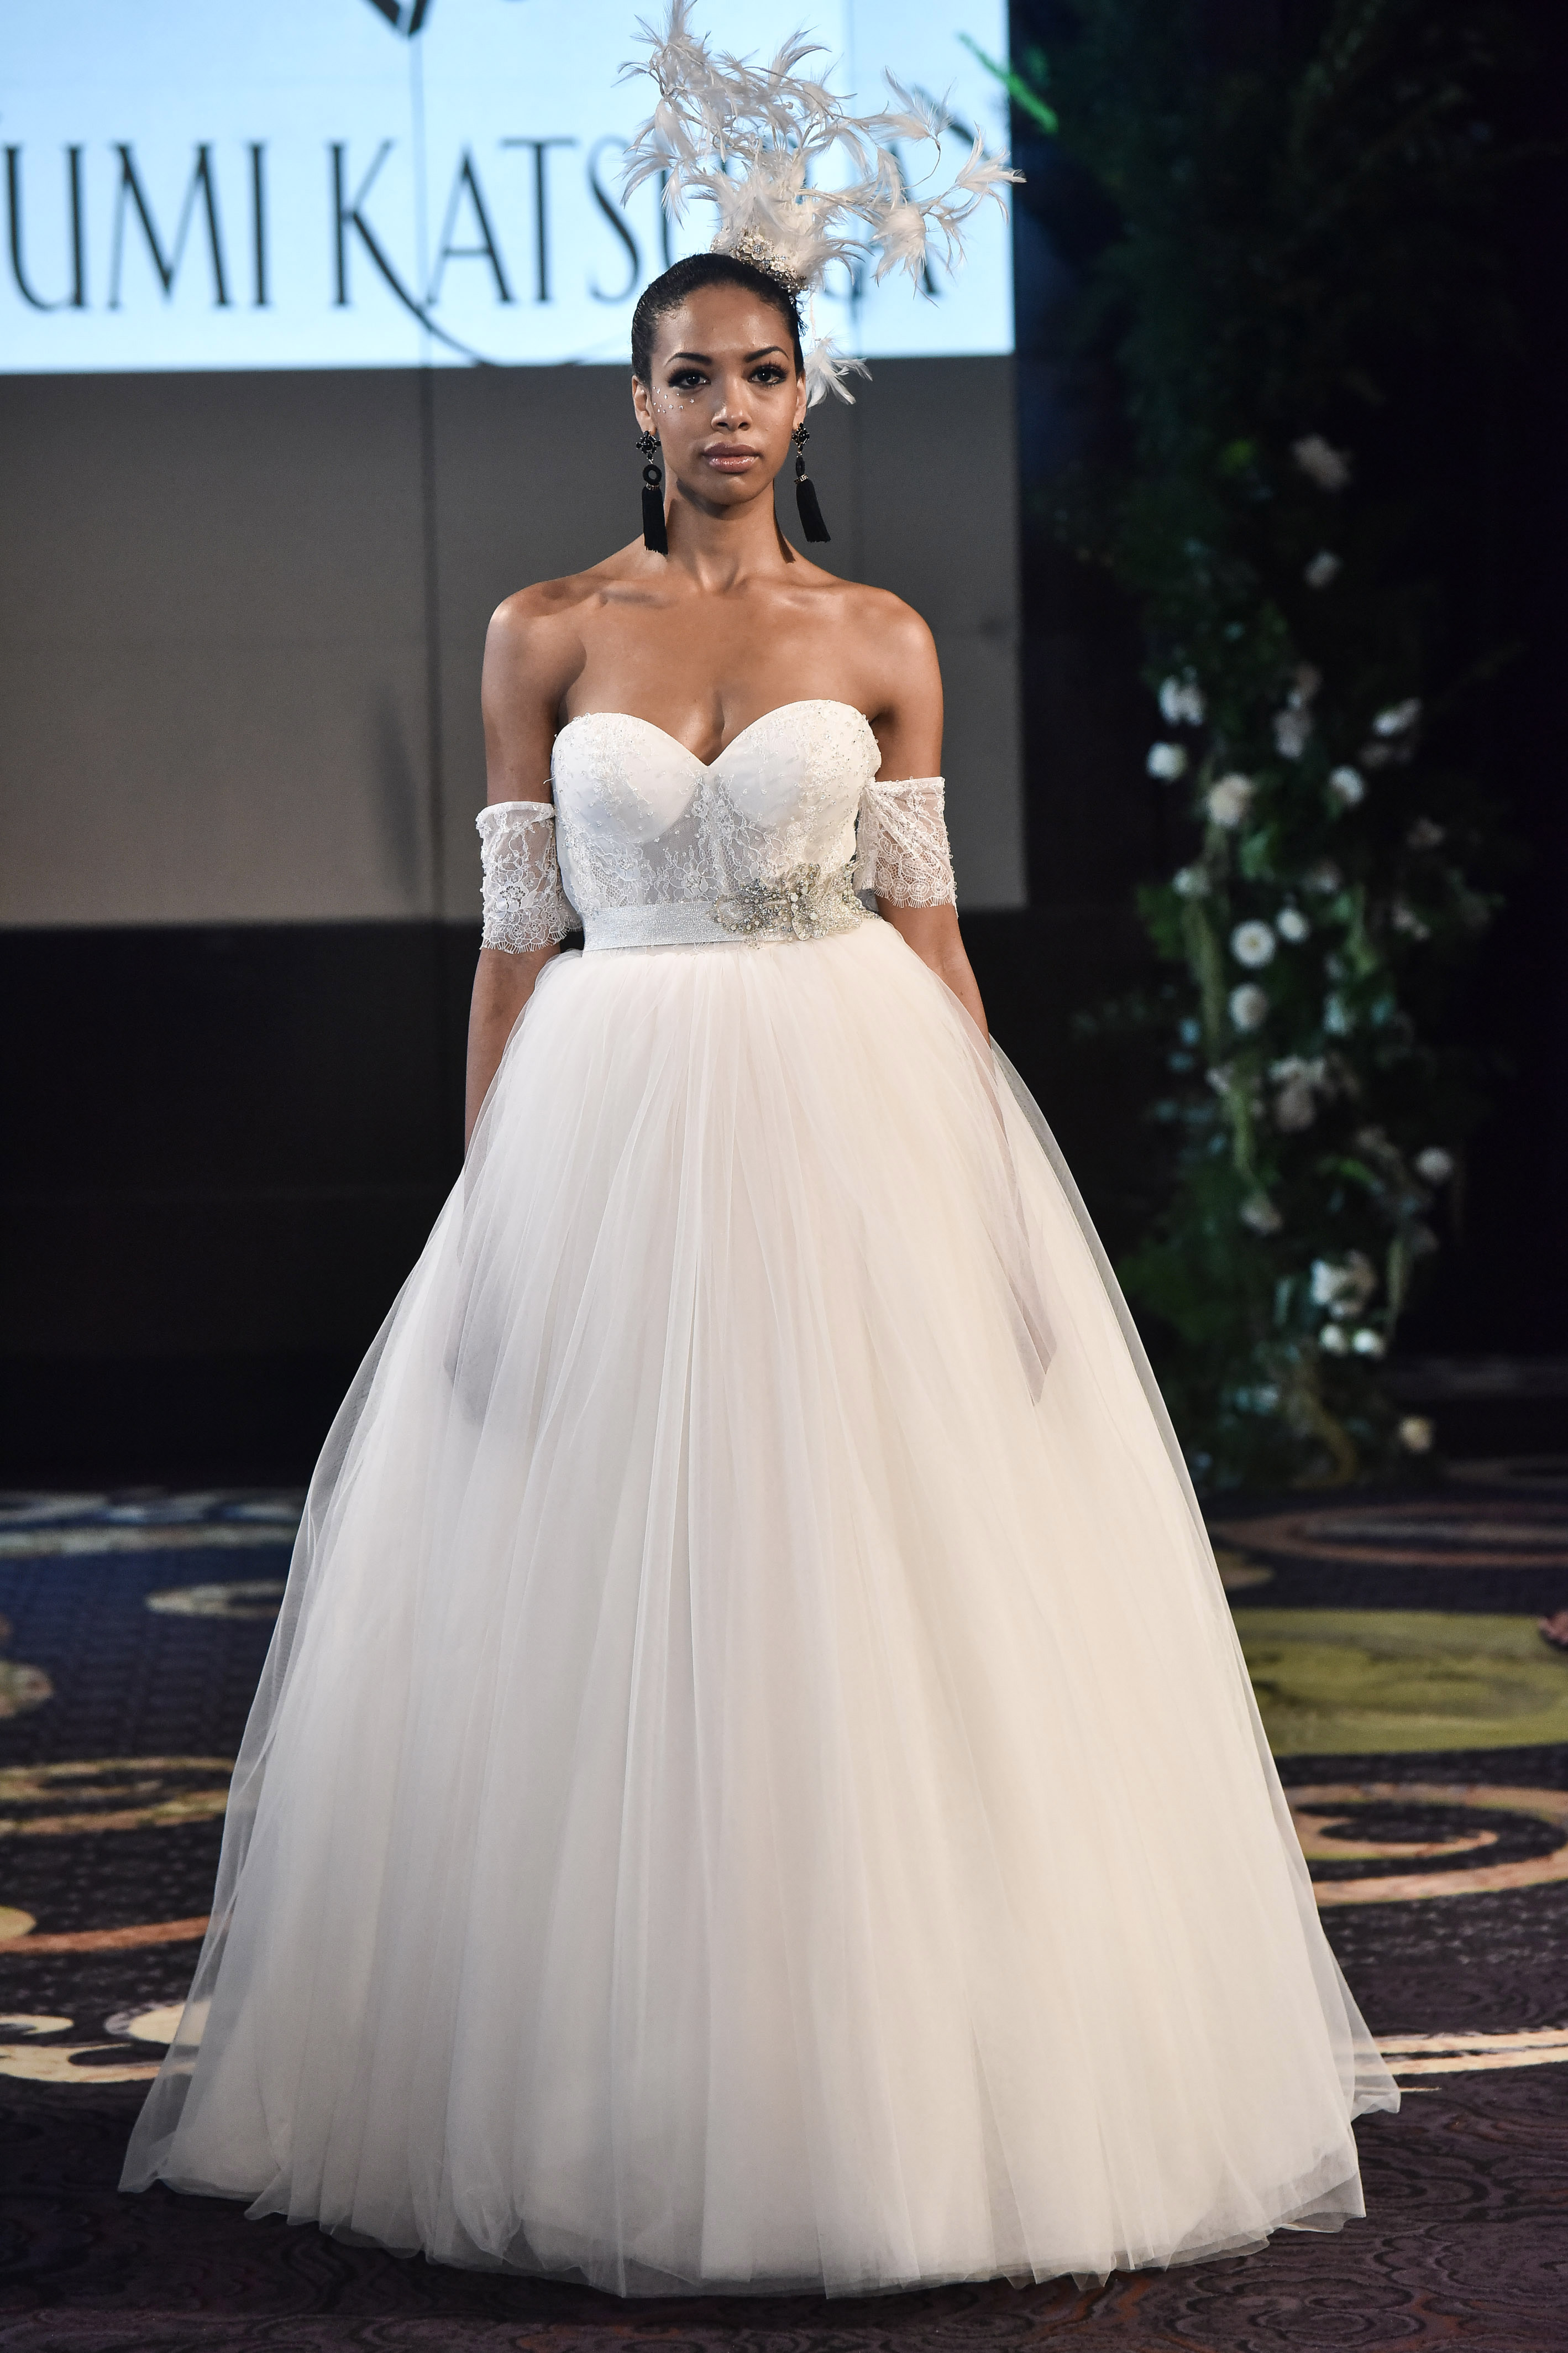 yumi katsura fall 2018 sweetheart ballgown wedding dress